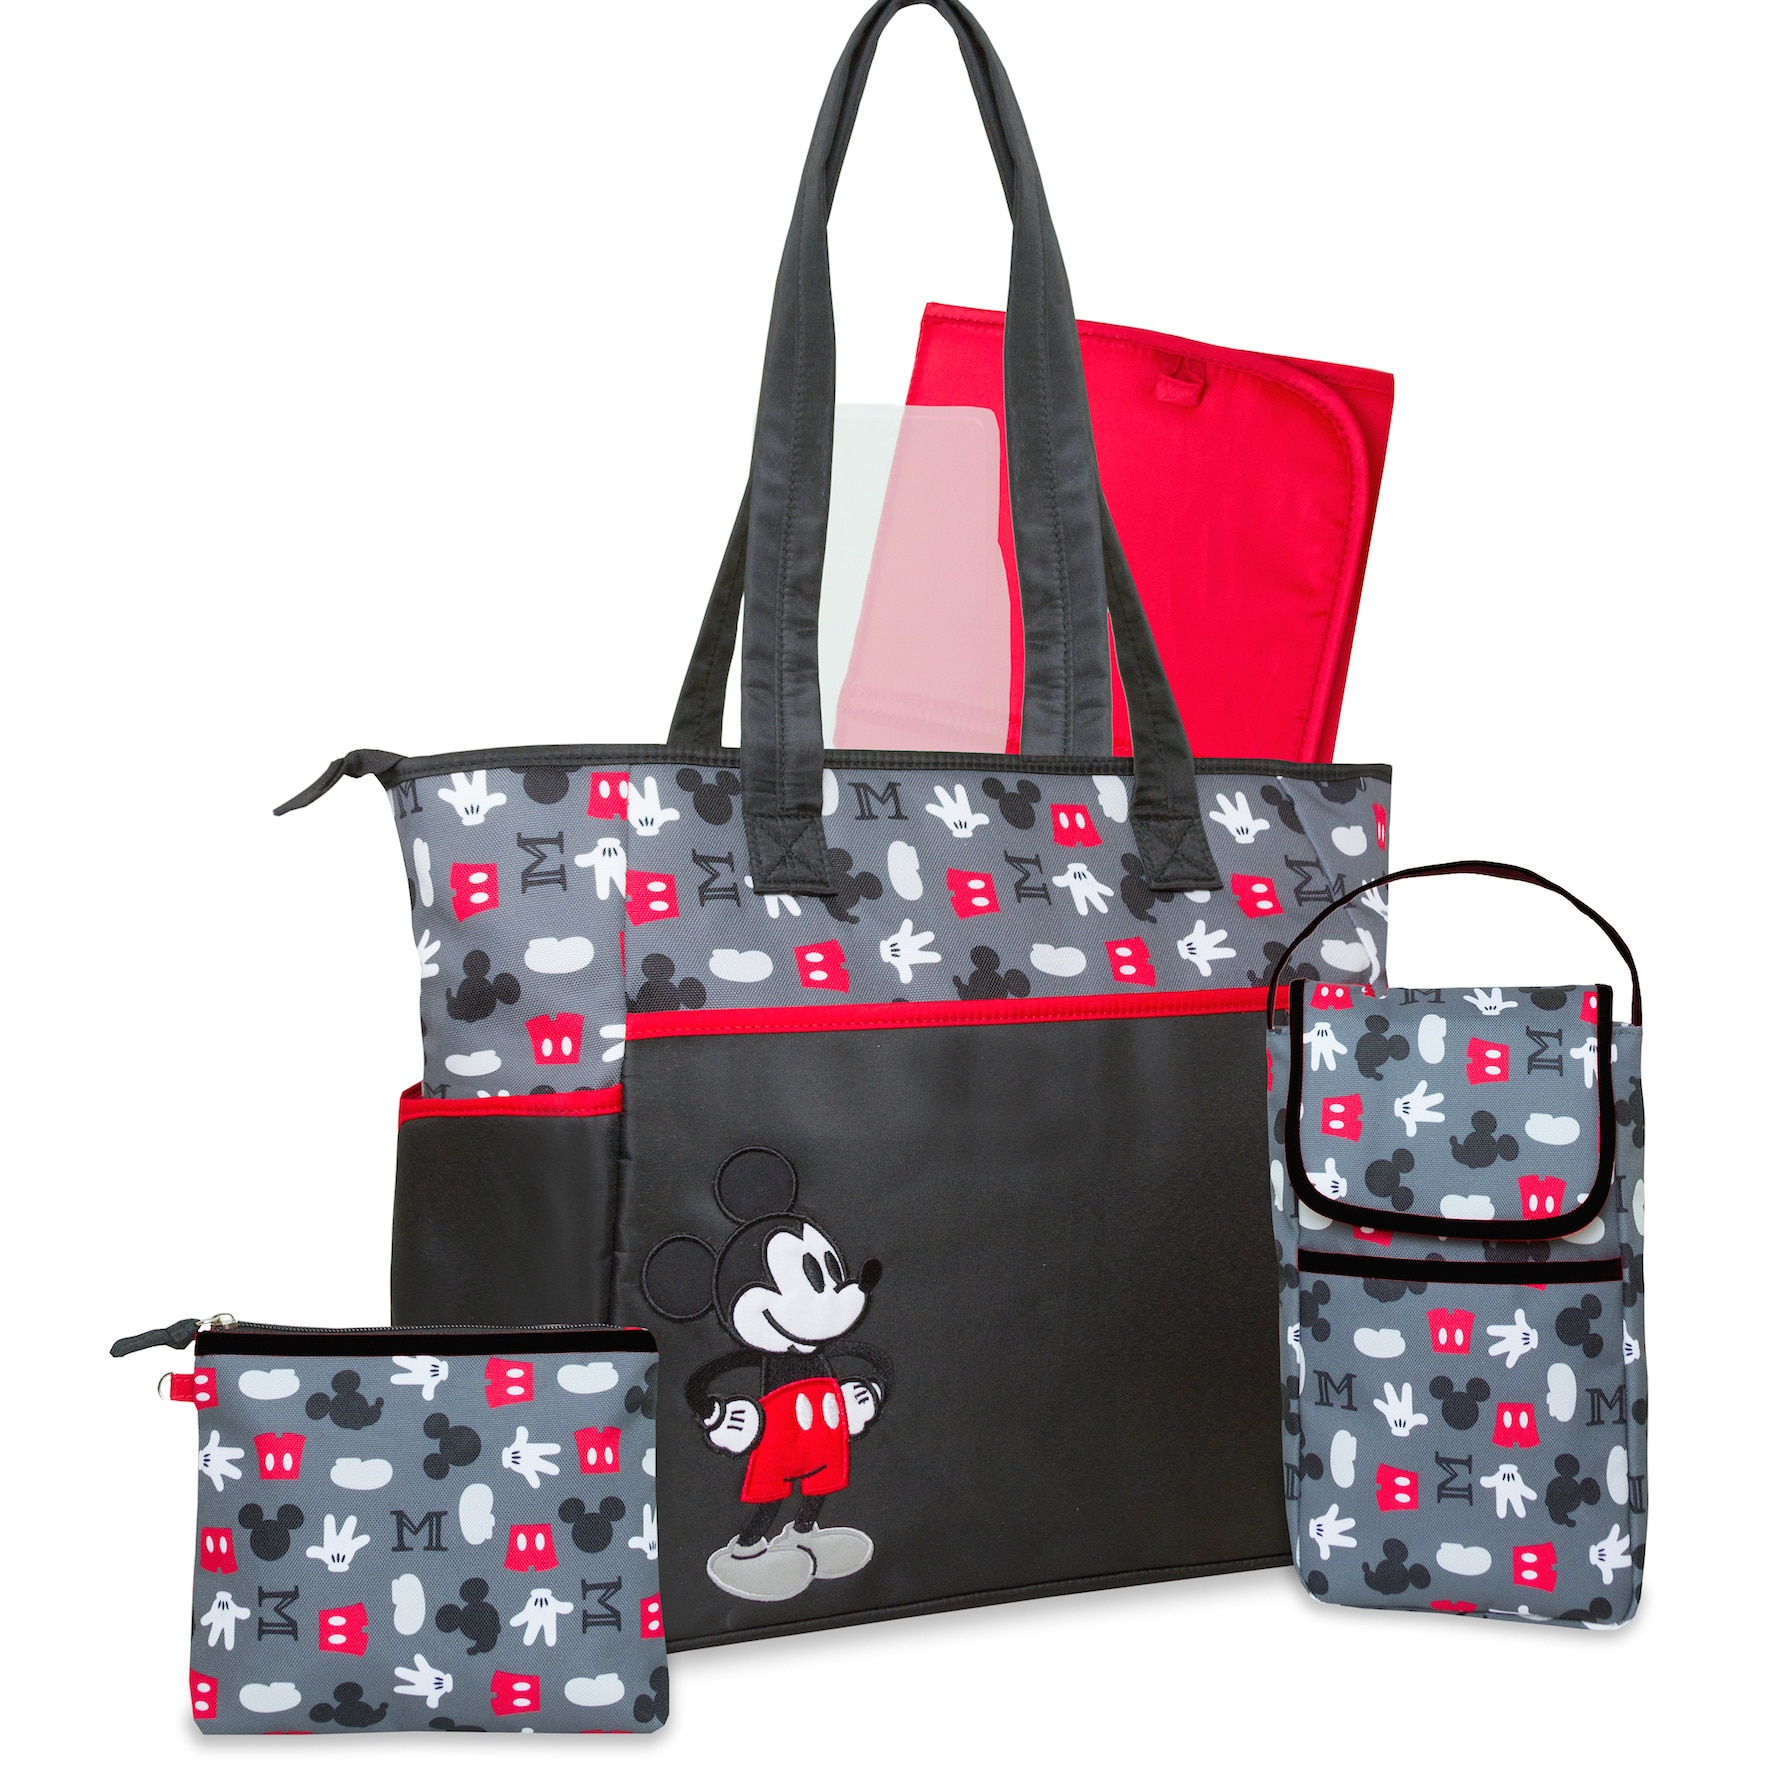 Minnie Mouse Bag Image